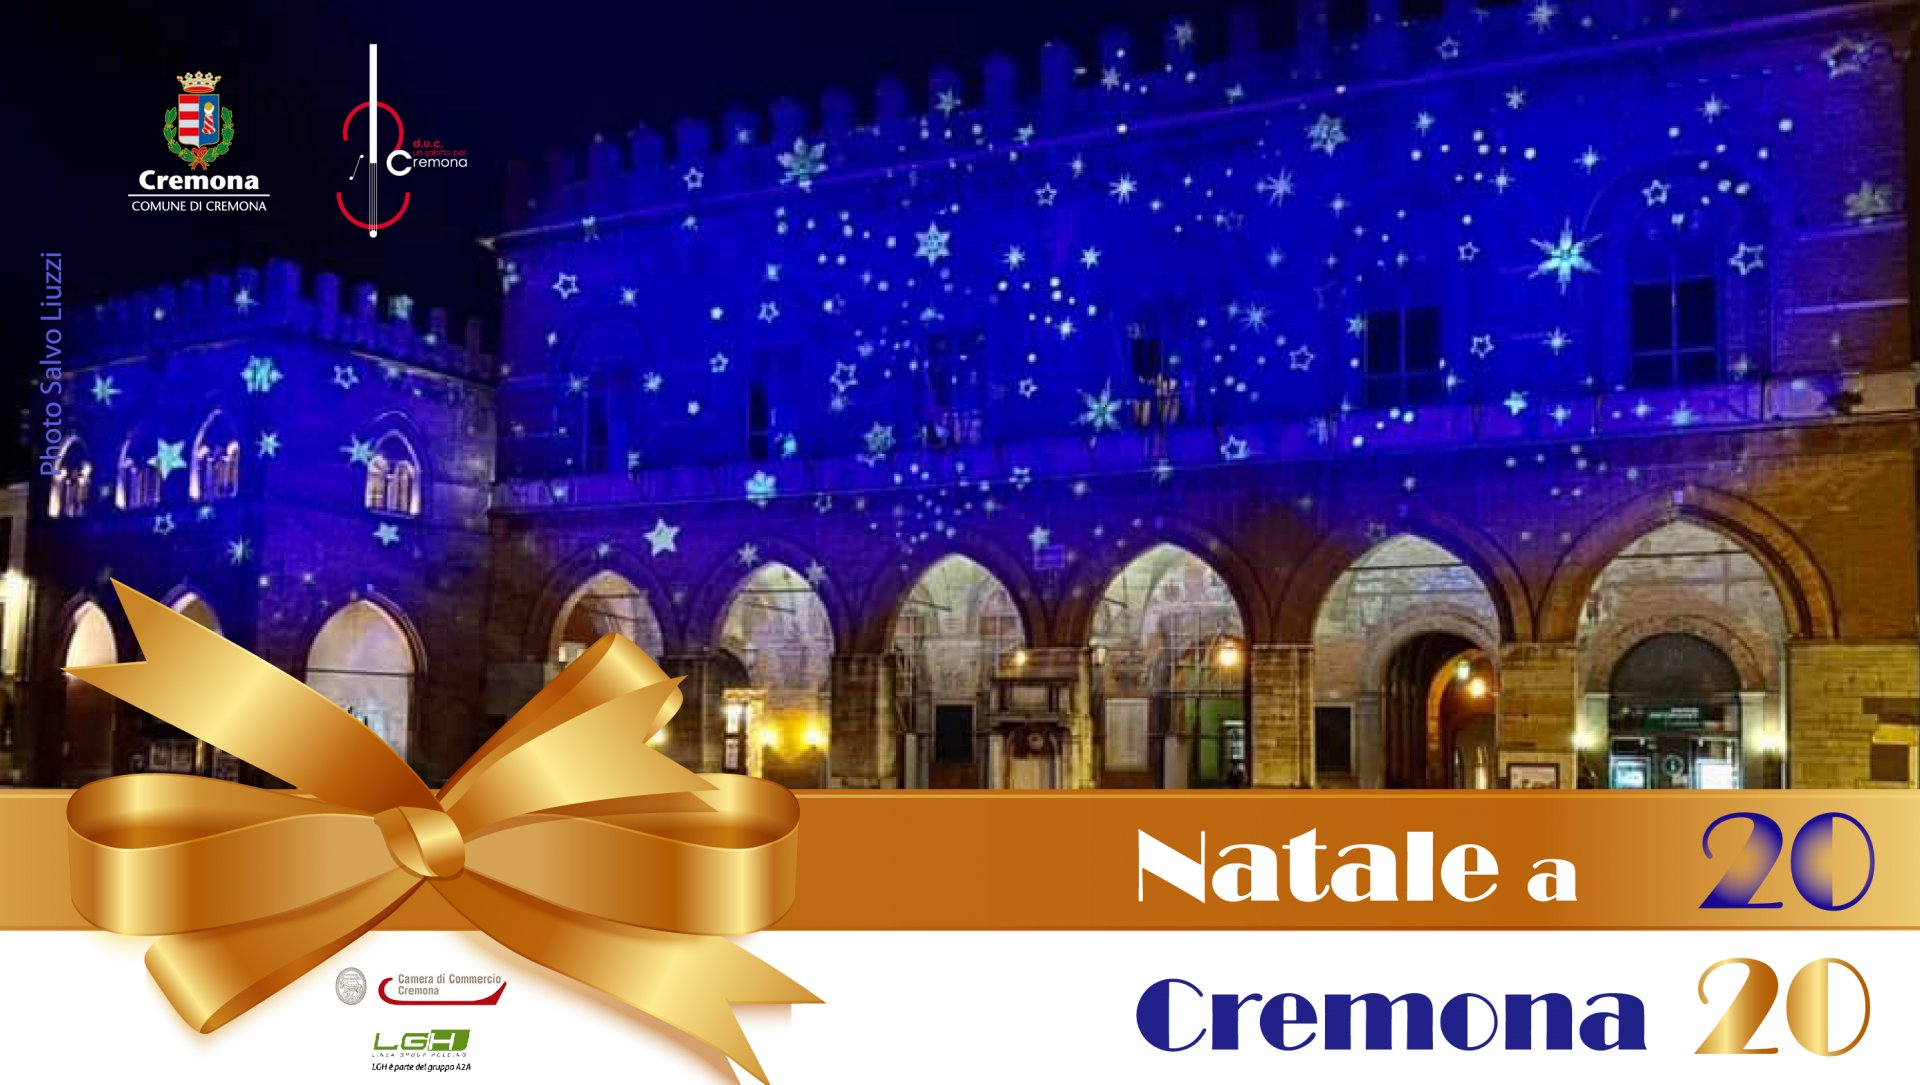 Natale a Cremona 2020_Banner